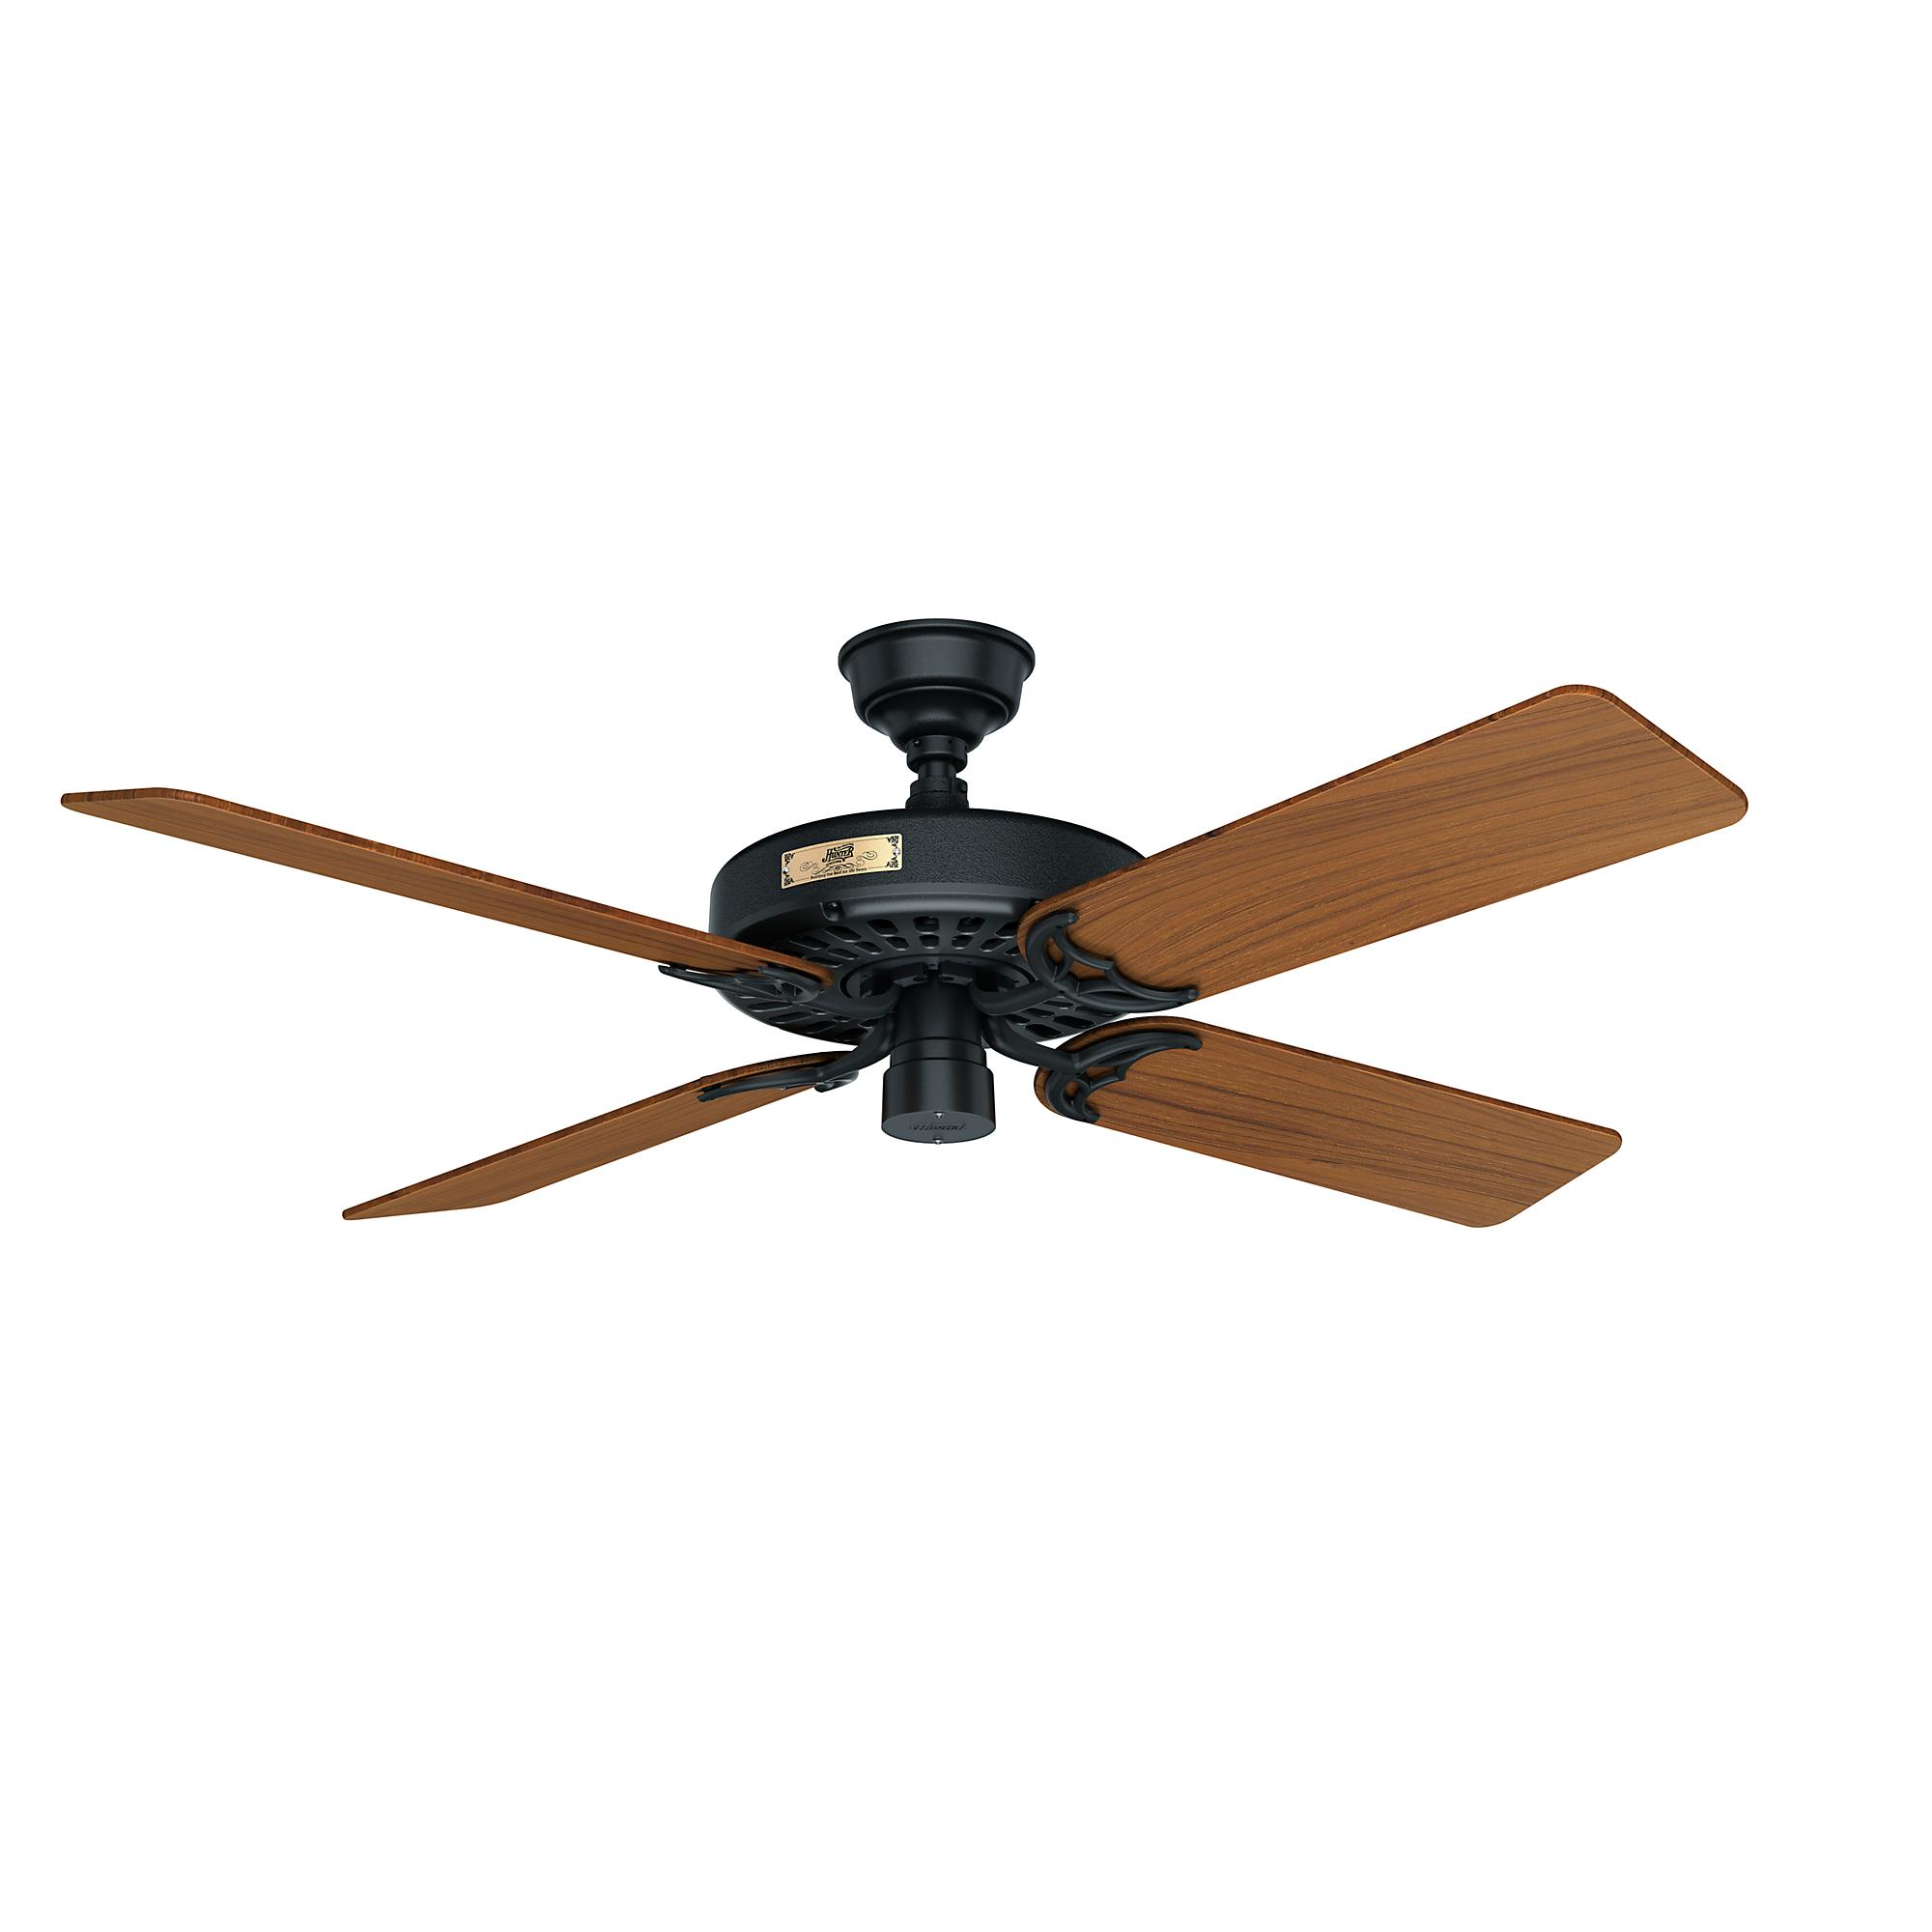 Lubricating Ceiling Fan : Hunter original with teak blades ceiling fans